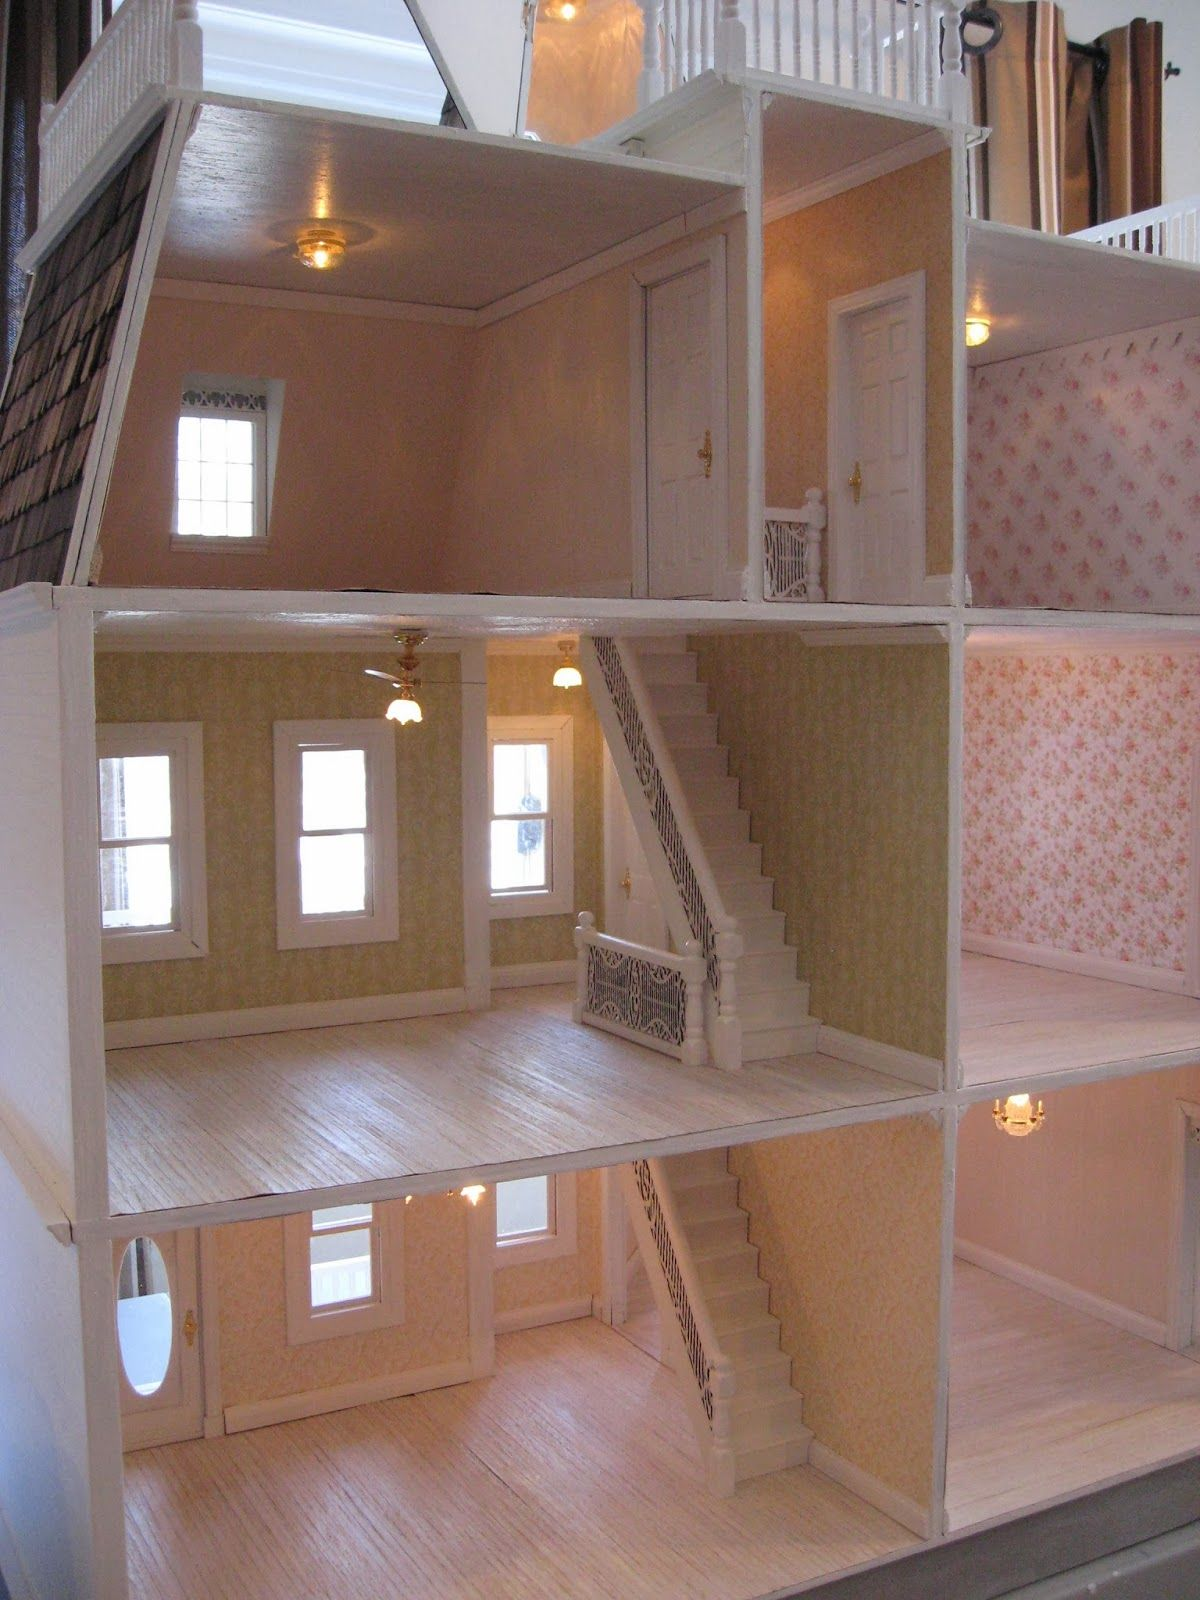 Little Darlings Dollhouses: Customized Newport Dollhouse with Addition #dollhouses